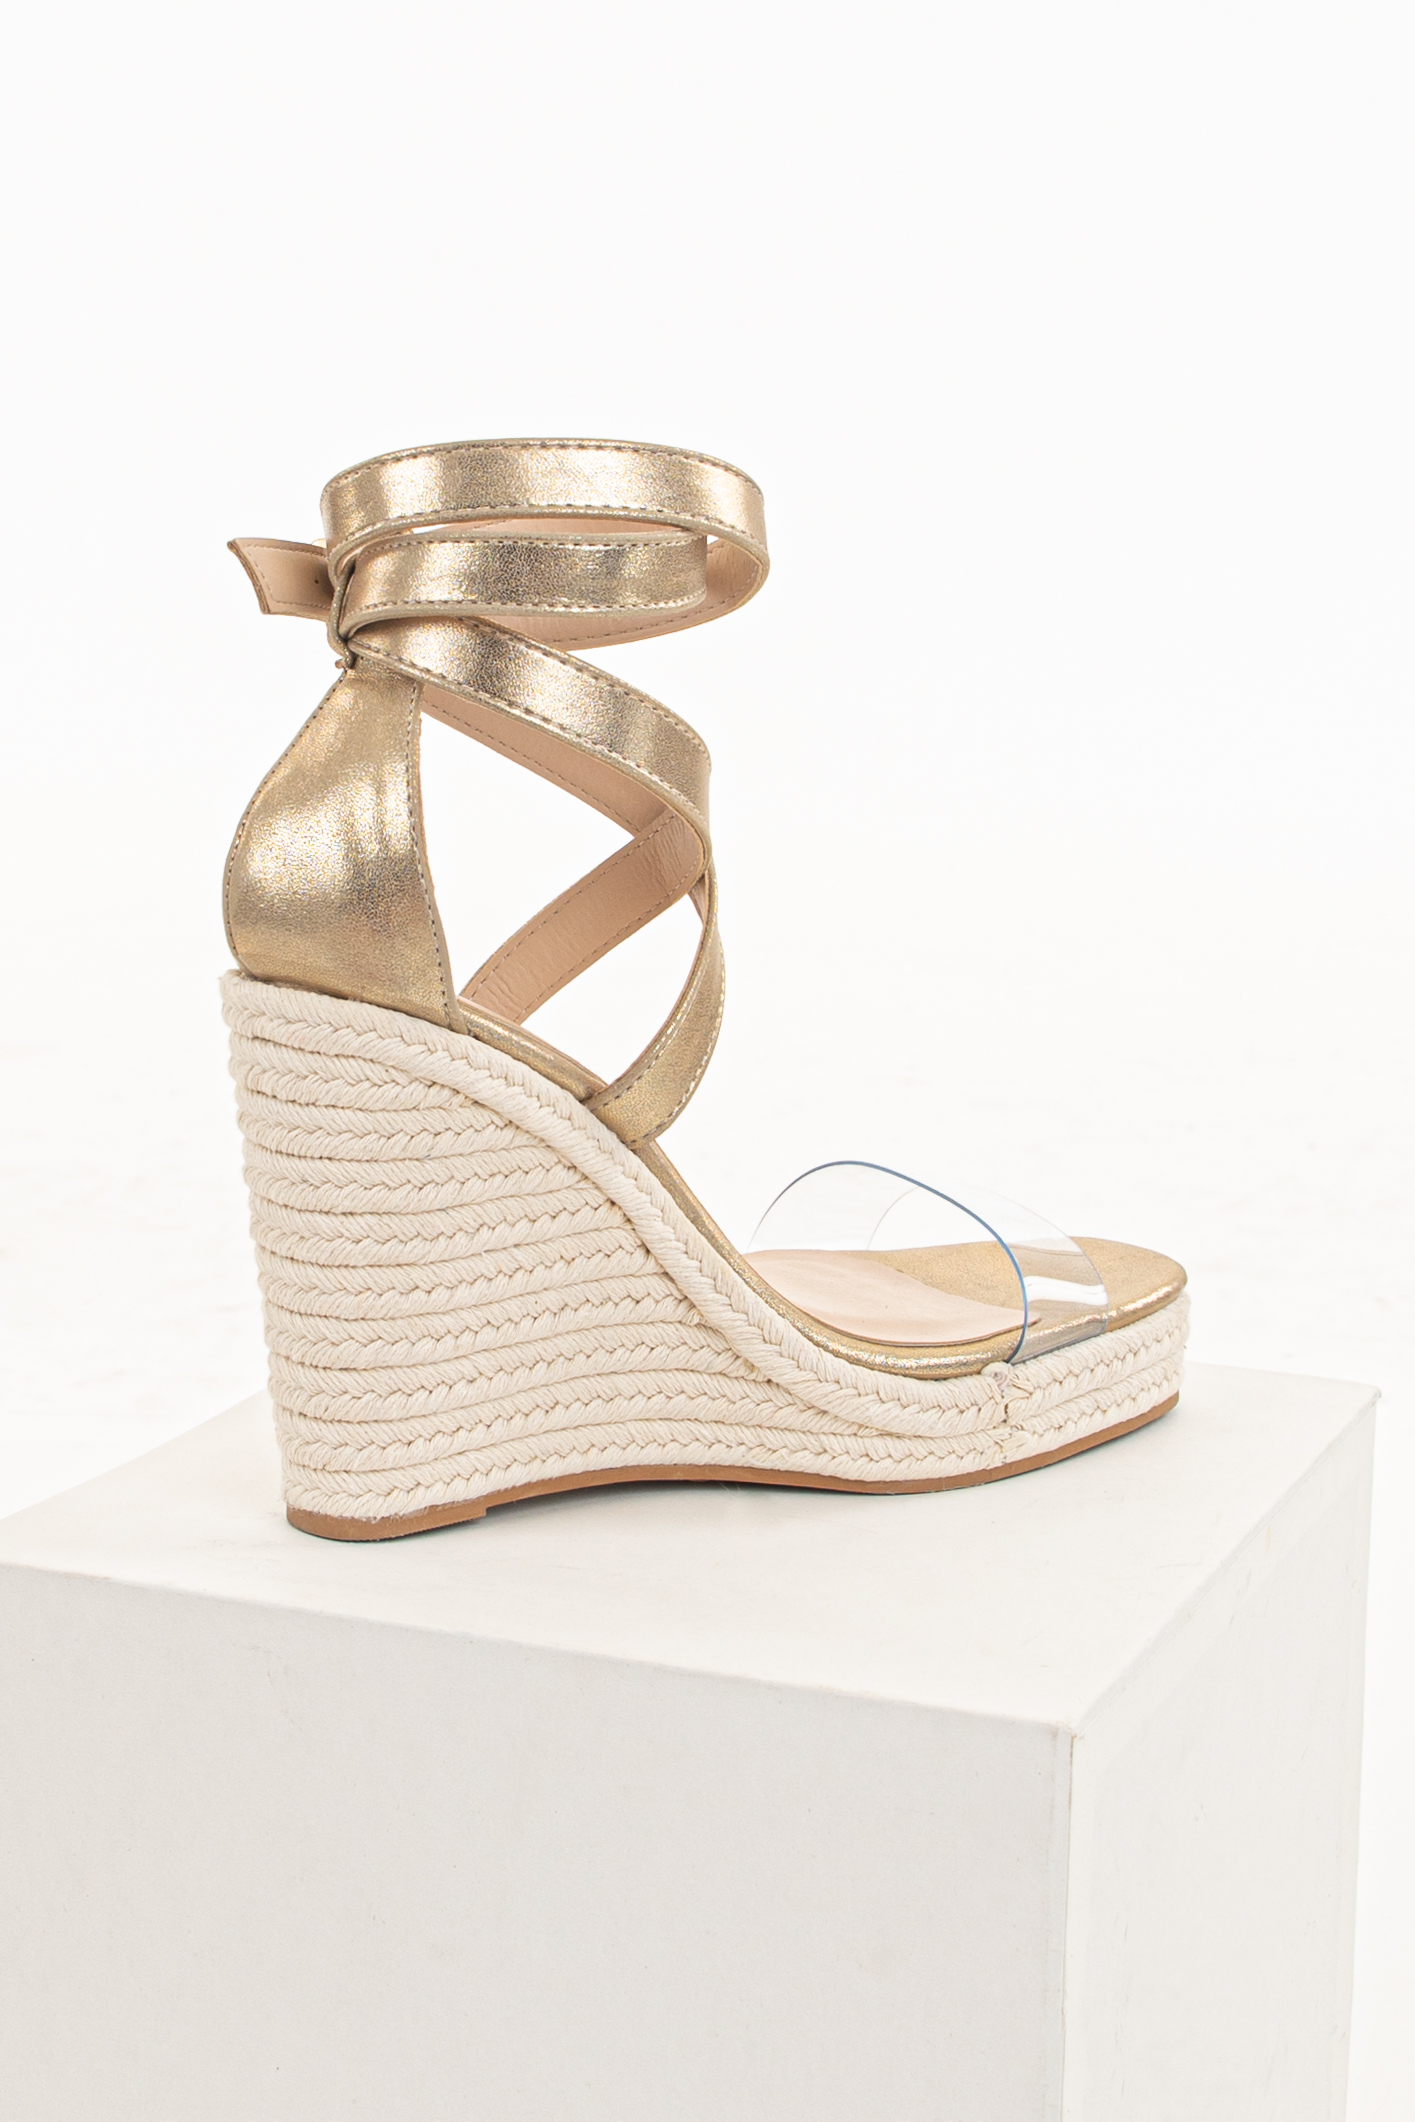 Gold Espadrille Wedge Heels with Criss Cross Ankle Strap